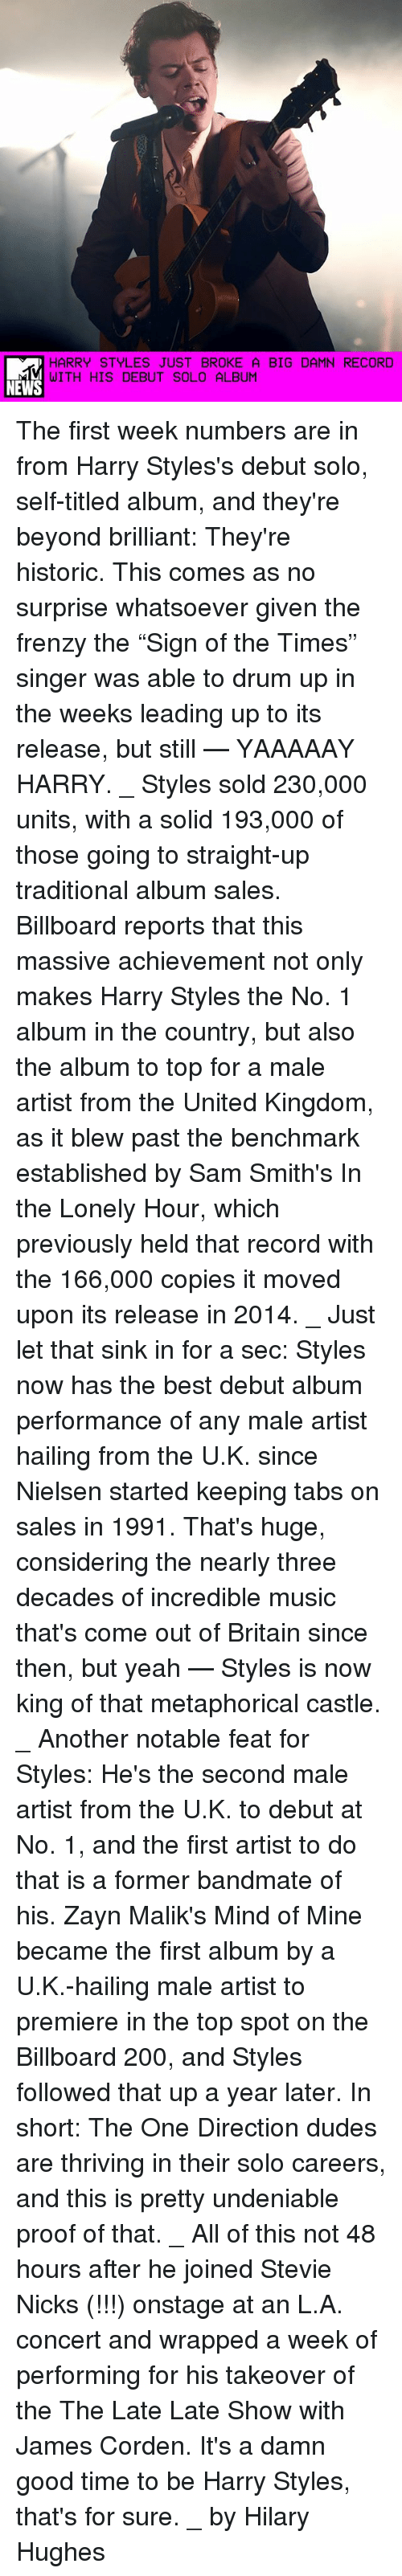 """Proofs: HARRY STYLES JUST BROKE A BIG DAMN RECORD  WITH HIS DEBUT SOLO ALBUM  NEWS The first week numbers are in from Harry Styles's debut solo, self-titled album, and they're beyond brilliant: They're historic. This comes as no surprise whatsoever given the frenzy the """"Sign of the Times"""" singer was able to drum up in the weeks leading up to its release, but still — YAAAAAY HARRY. _ Styles sold 230,000 units, with a solid 193,000 of those going to straight-up traditional album sales. Billboard reports that this massive achievement not only makes Harry Styles the No. 1 album in the country, but also the album to top for a male artist from the United Kingdom, as it blew past the benchmark established by Sam Smith's In the Lonely Hour, which previously held that record with the 166,000 copies it moved upon its release in 2014. _ Just let that sink in for a sec: Styles now has the best debut album performance of any male artist hailing from the U.K. since Nielsen started keeping tabs on sales in 1991. That's huge, considering the nearly three decades of incredible music that's come out of Britain since then, but yeah — Styles is now king of that metaphorical castle. _ Another notable feat for Styles: He's the second male artist from the U.K. to debut at No. 1, and the first artist to do that is a former bandmate of his. Zayn Malik's Mind of Mine became the first album by a U.K.-hailing male artist to premiere in the top spot on the Billboard 200, and Styles followed that up a year later. In short: The One Direction dudes are thriving in their solo careers, and this is pretty undeniable proof of that. _ All of this not 48 hours after he joined Stevie Nicks (!!!) onstage at an L.A. concert and wrapped a week of performing for his takeover of the The Late Late Show with James Corden. It's a damn good time to be Harry Styles, that's for sure. _ by Hilary Hughes"""